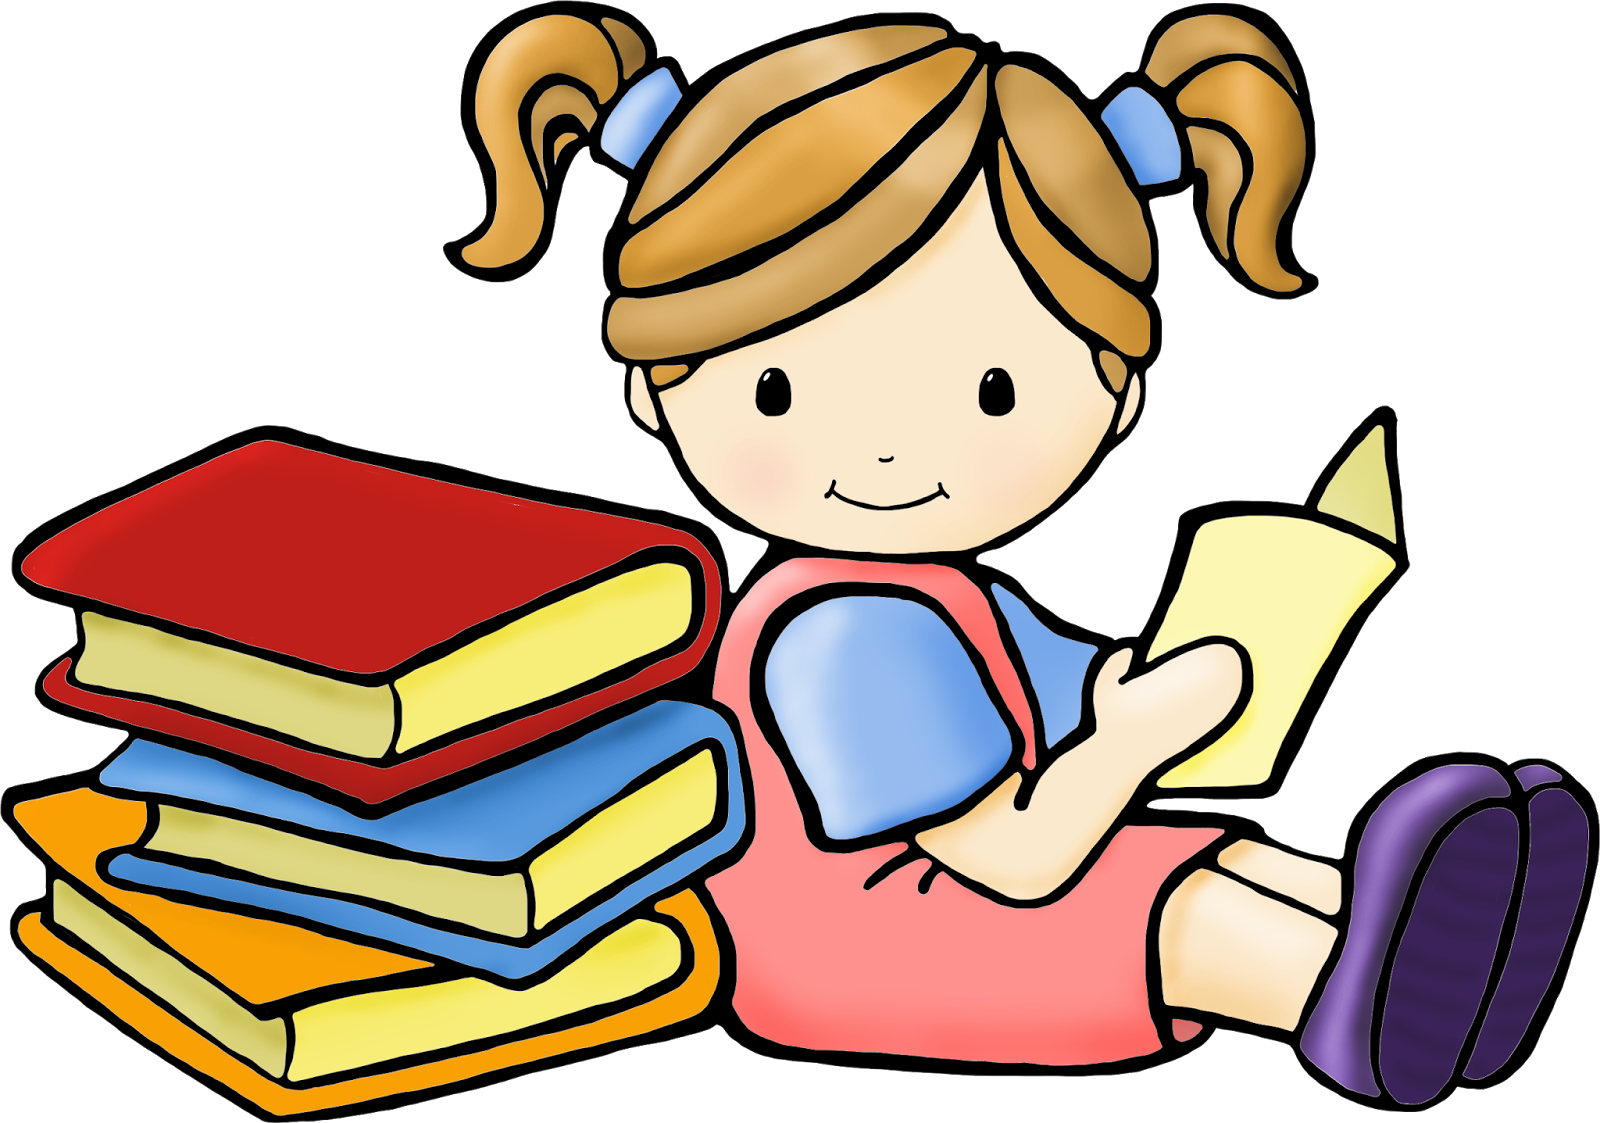 Clipart Of Child Reading A Book.